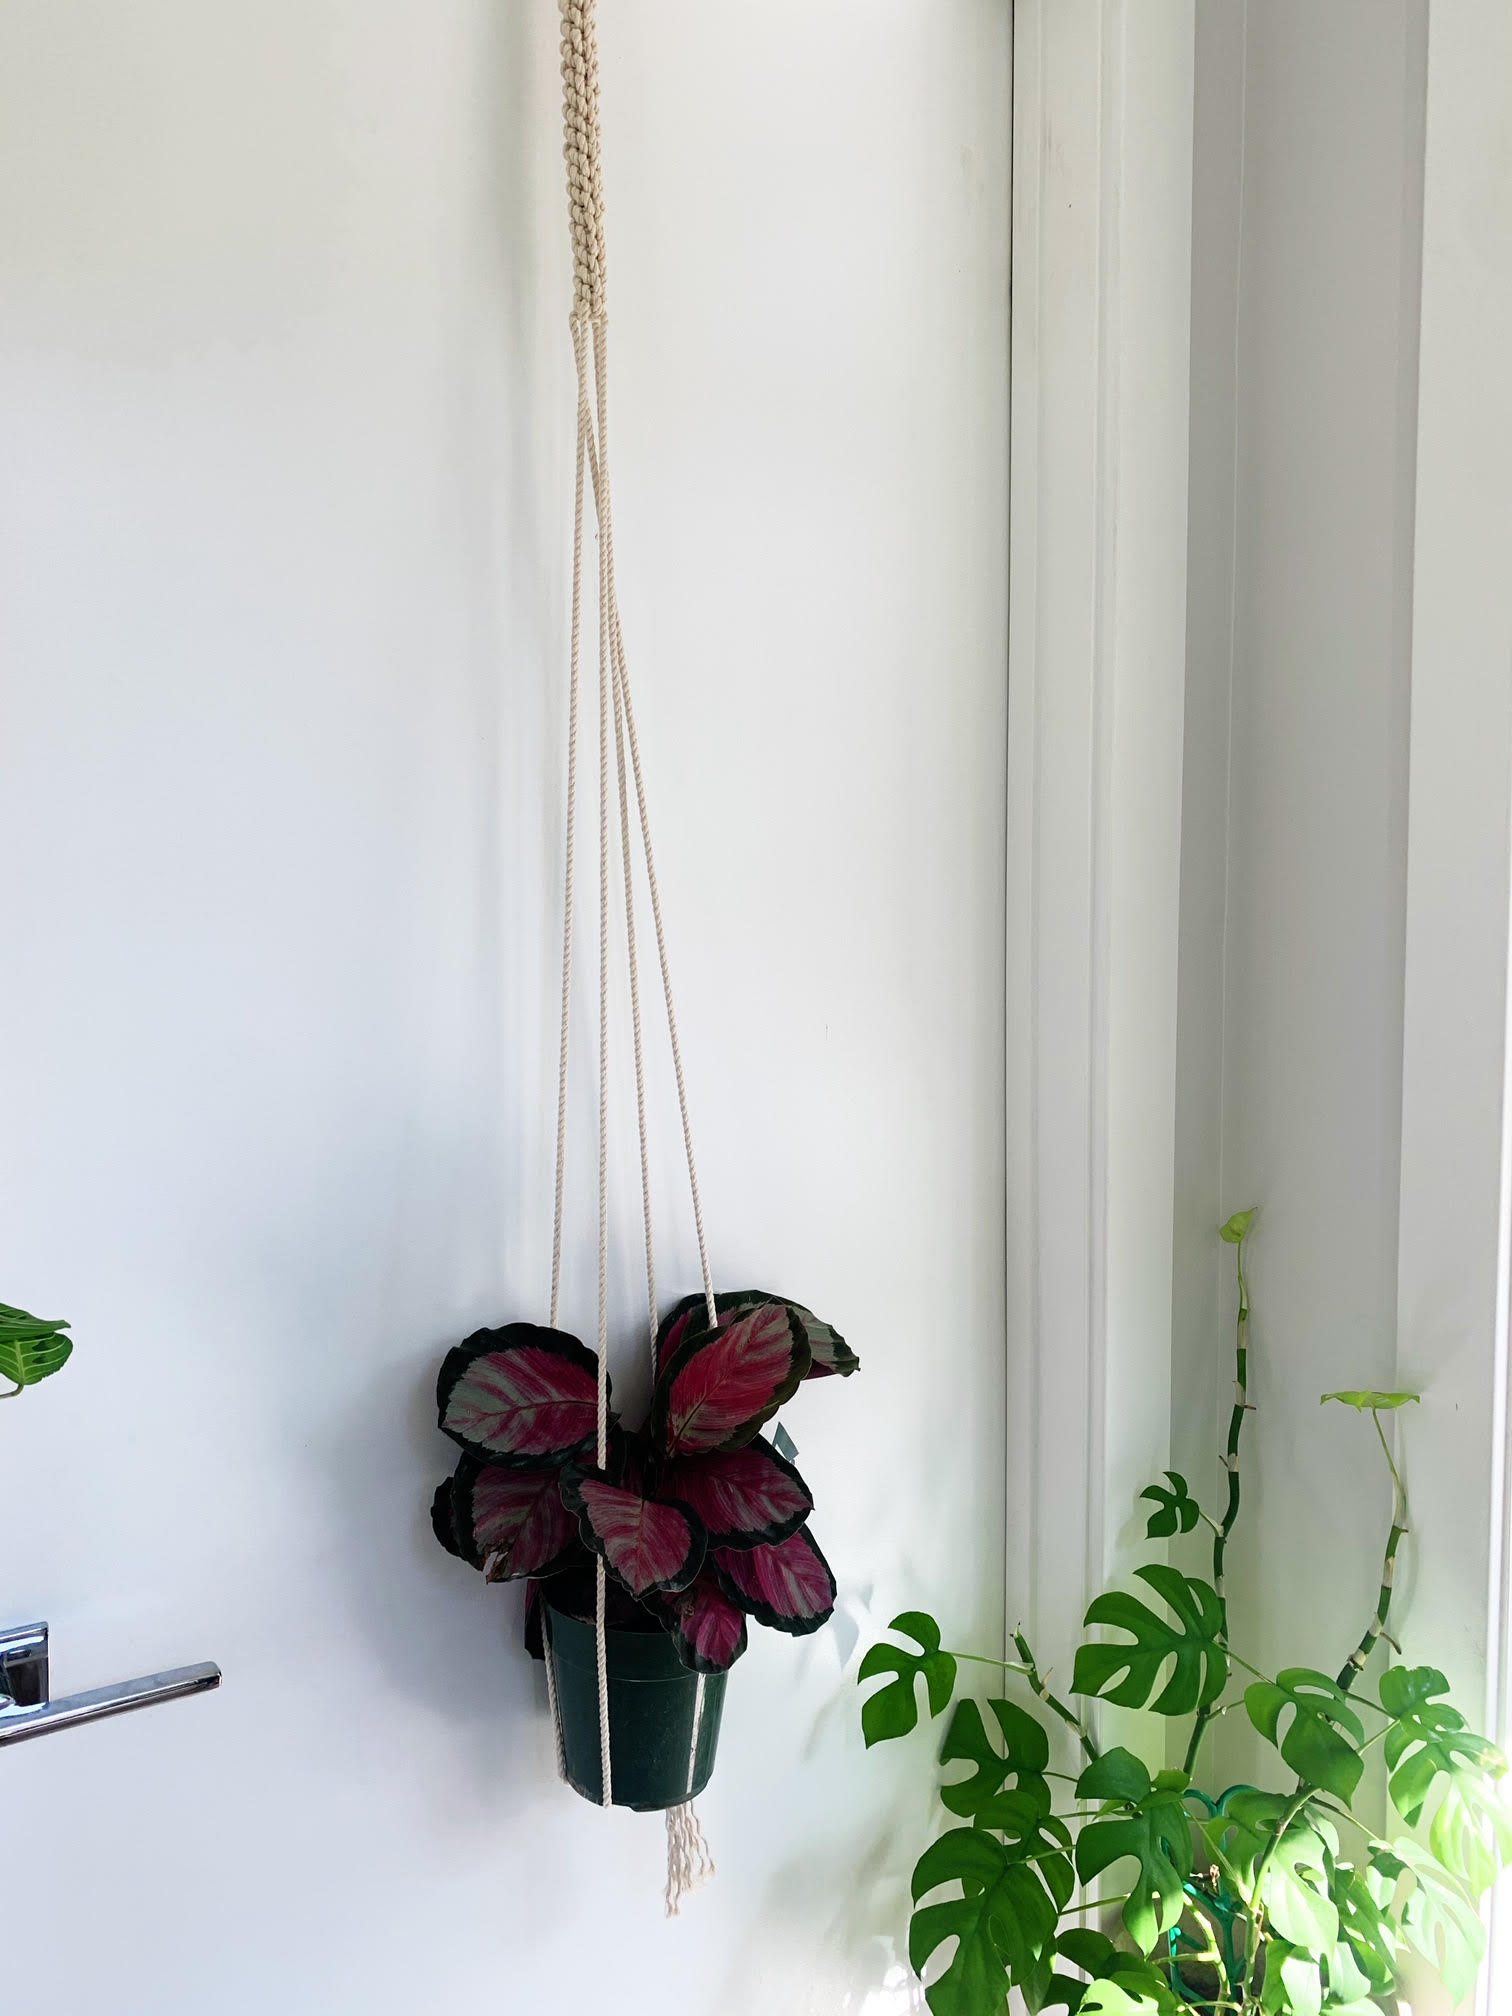 Single Plant and Macrame Plant Hanger